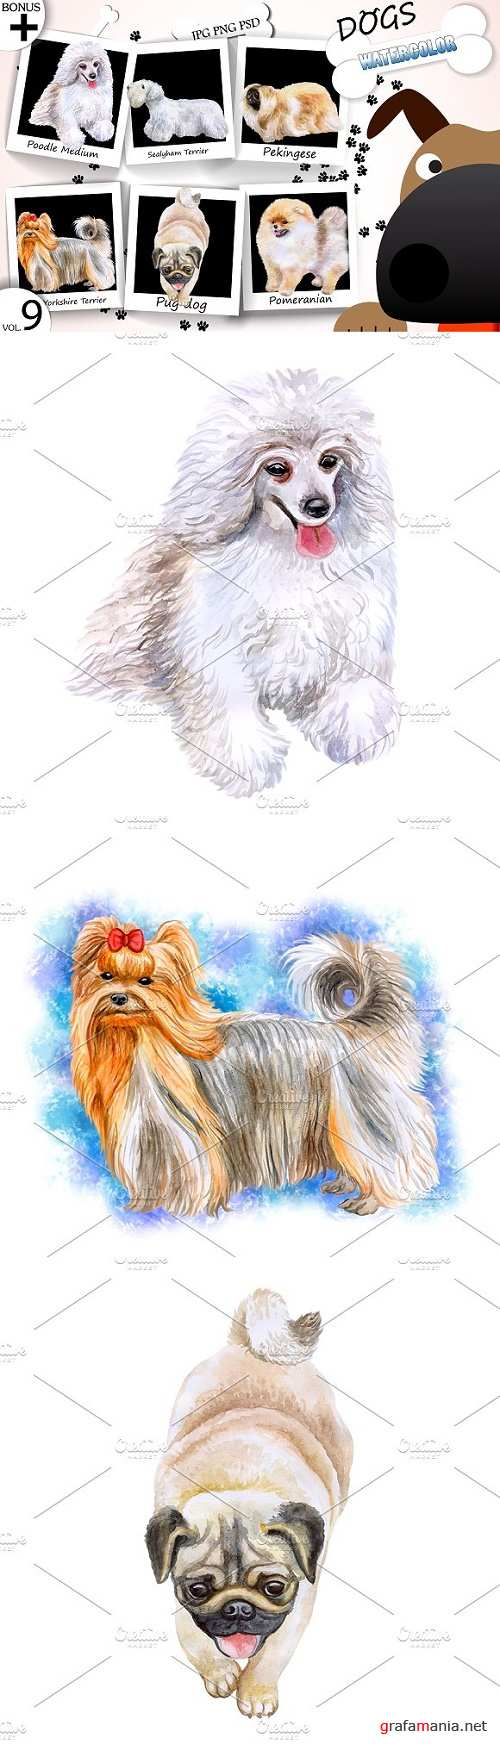 Watercolor Dogs - Collection 9 of 12 - 1749062